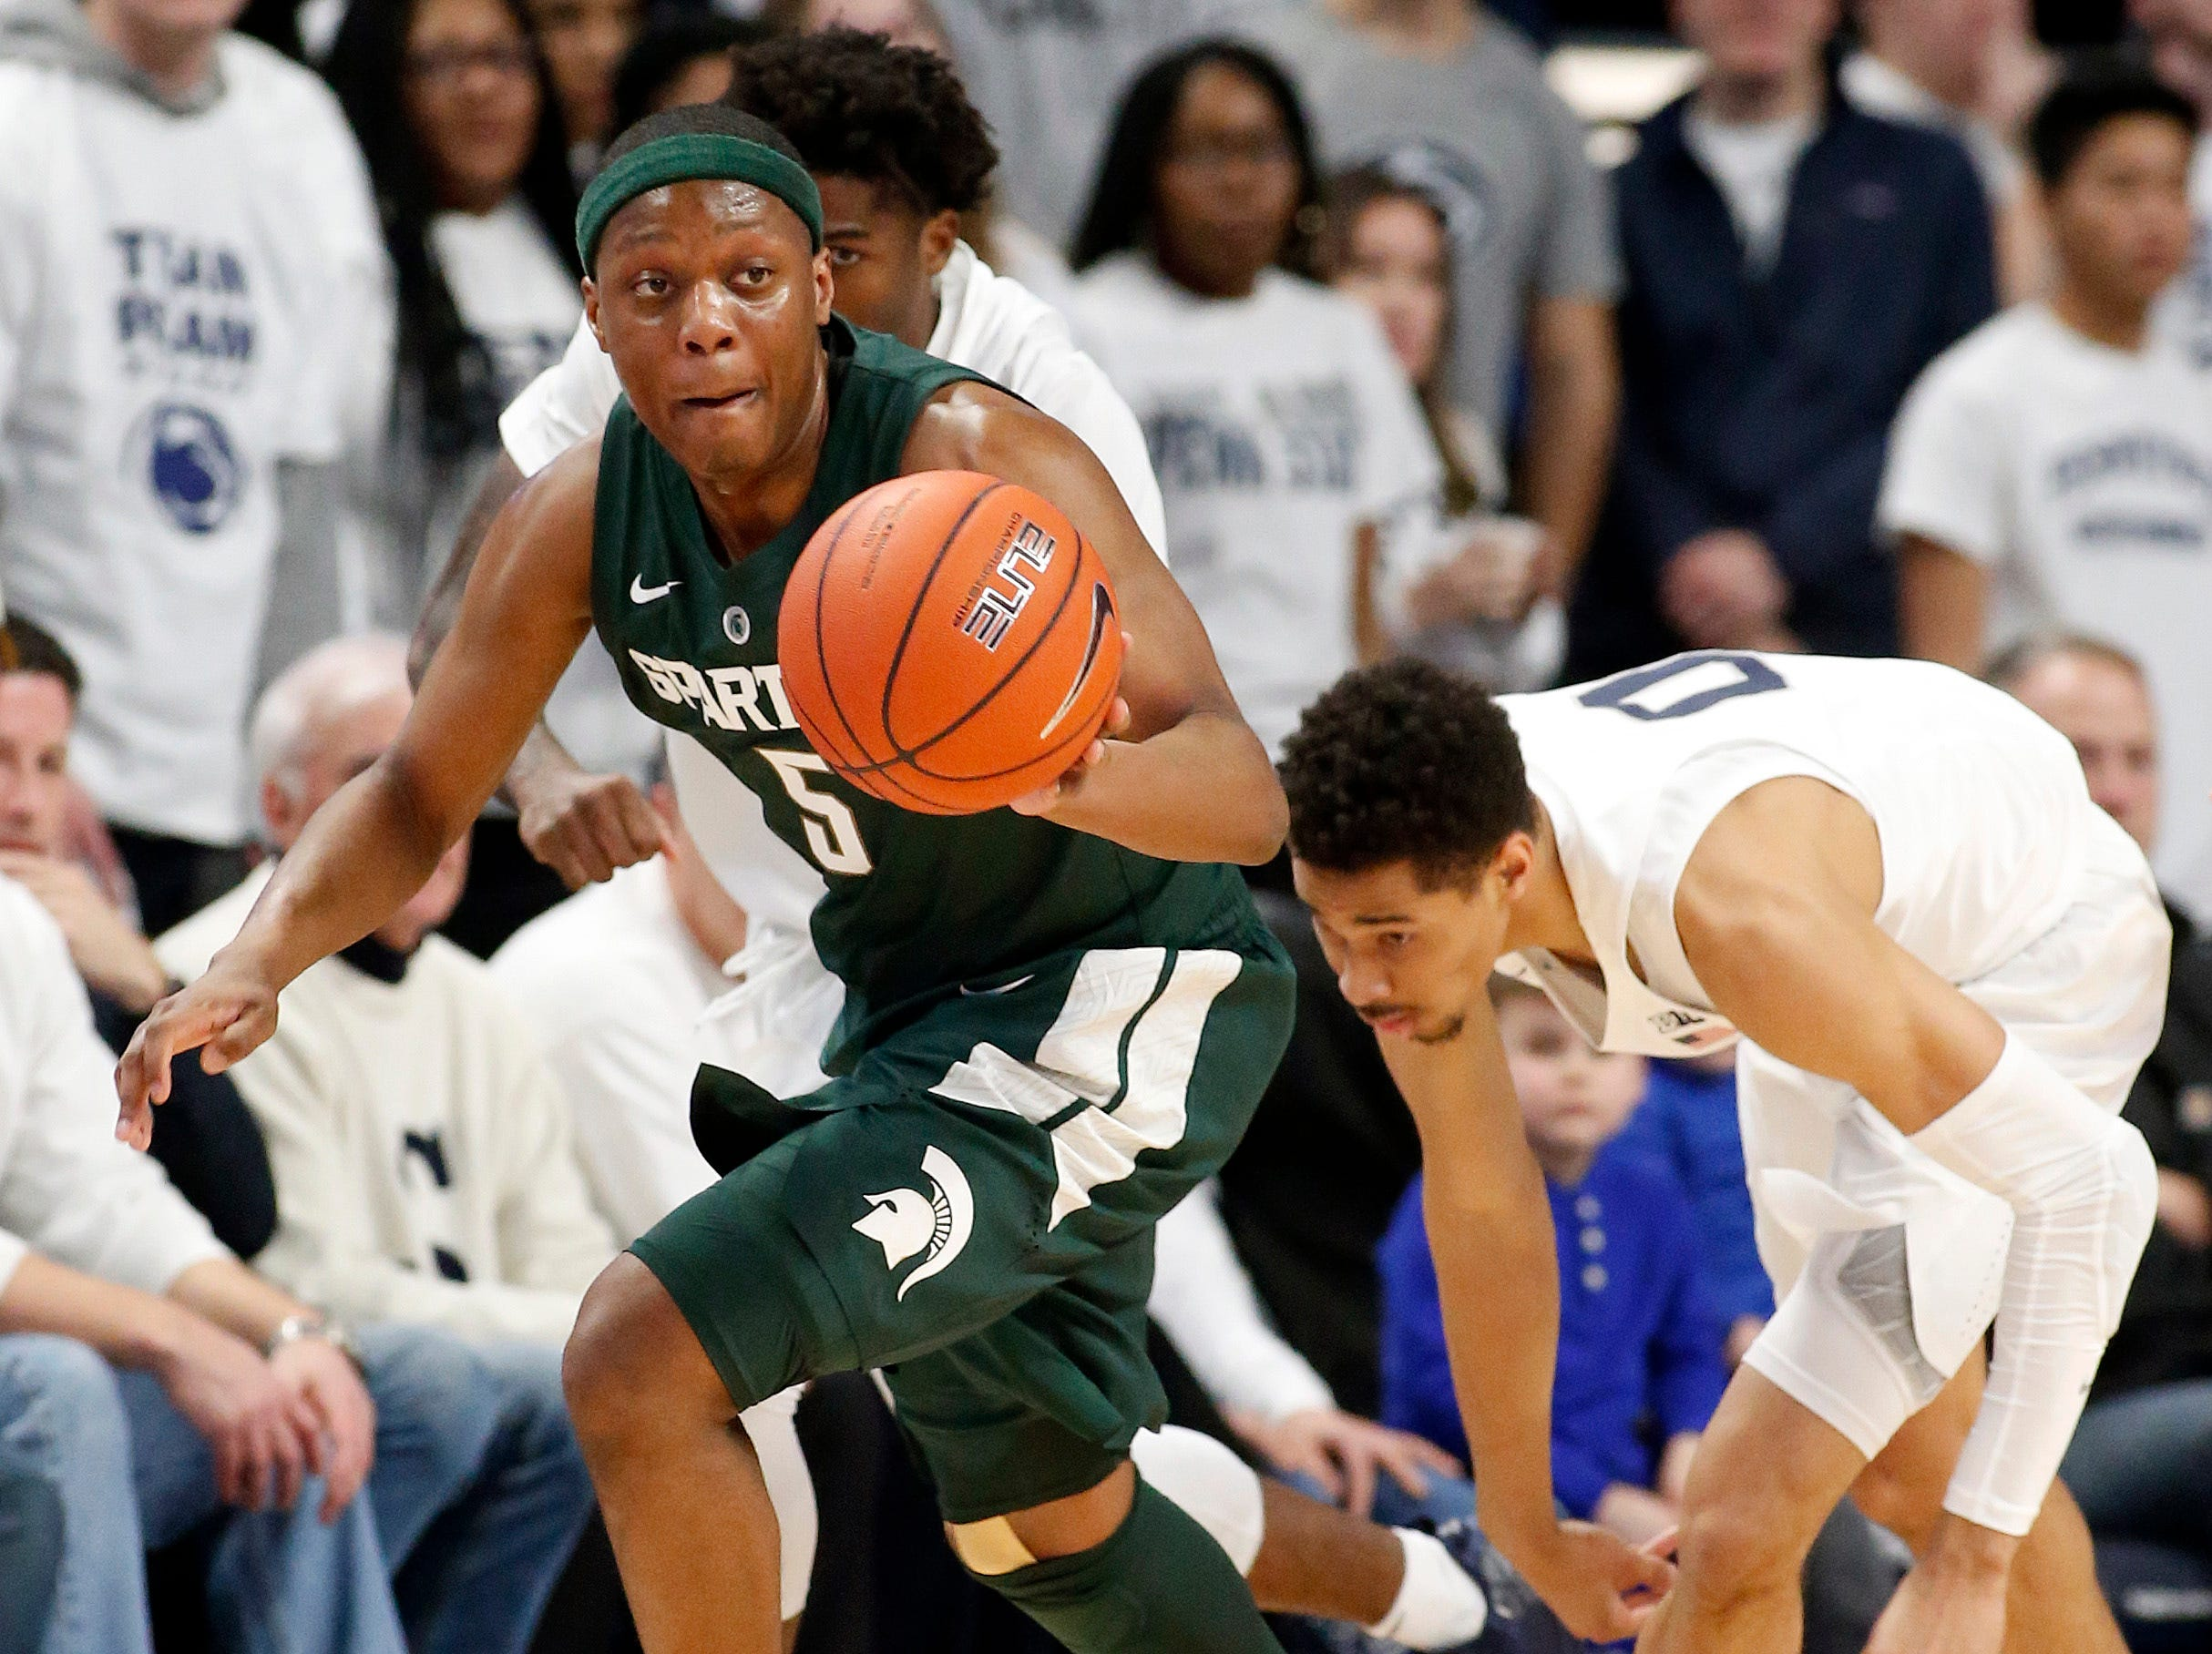 Michigan State's Cassius Winston (5) takes off with the ball after a steal against Penn State's Myreon Jones (0) during first half action of an NCAA college basketball game in State College, Pa. Sunday, Jan. 13, 2019. (AP Photo/Chris Knight)